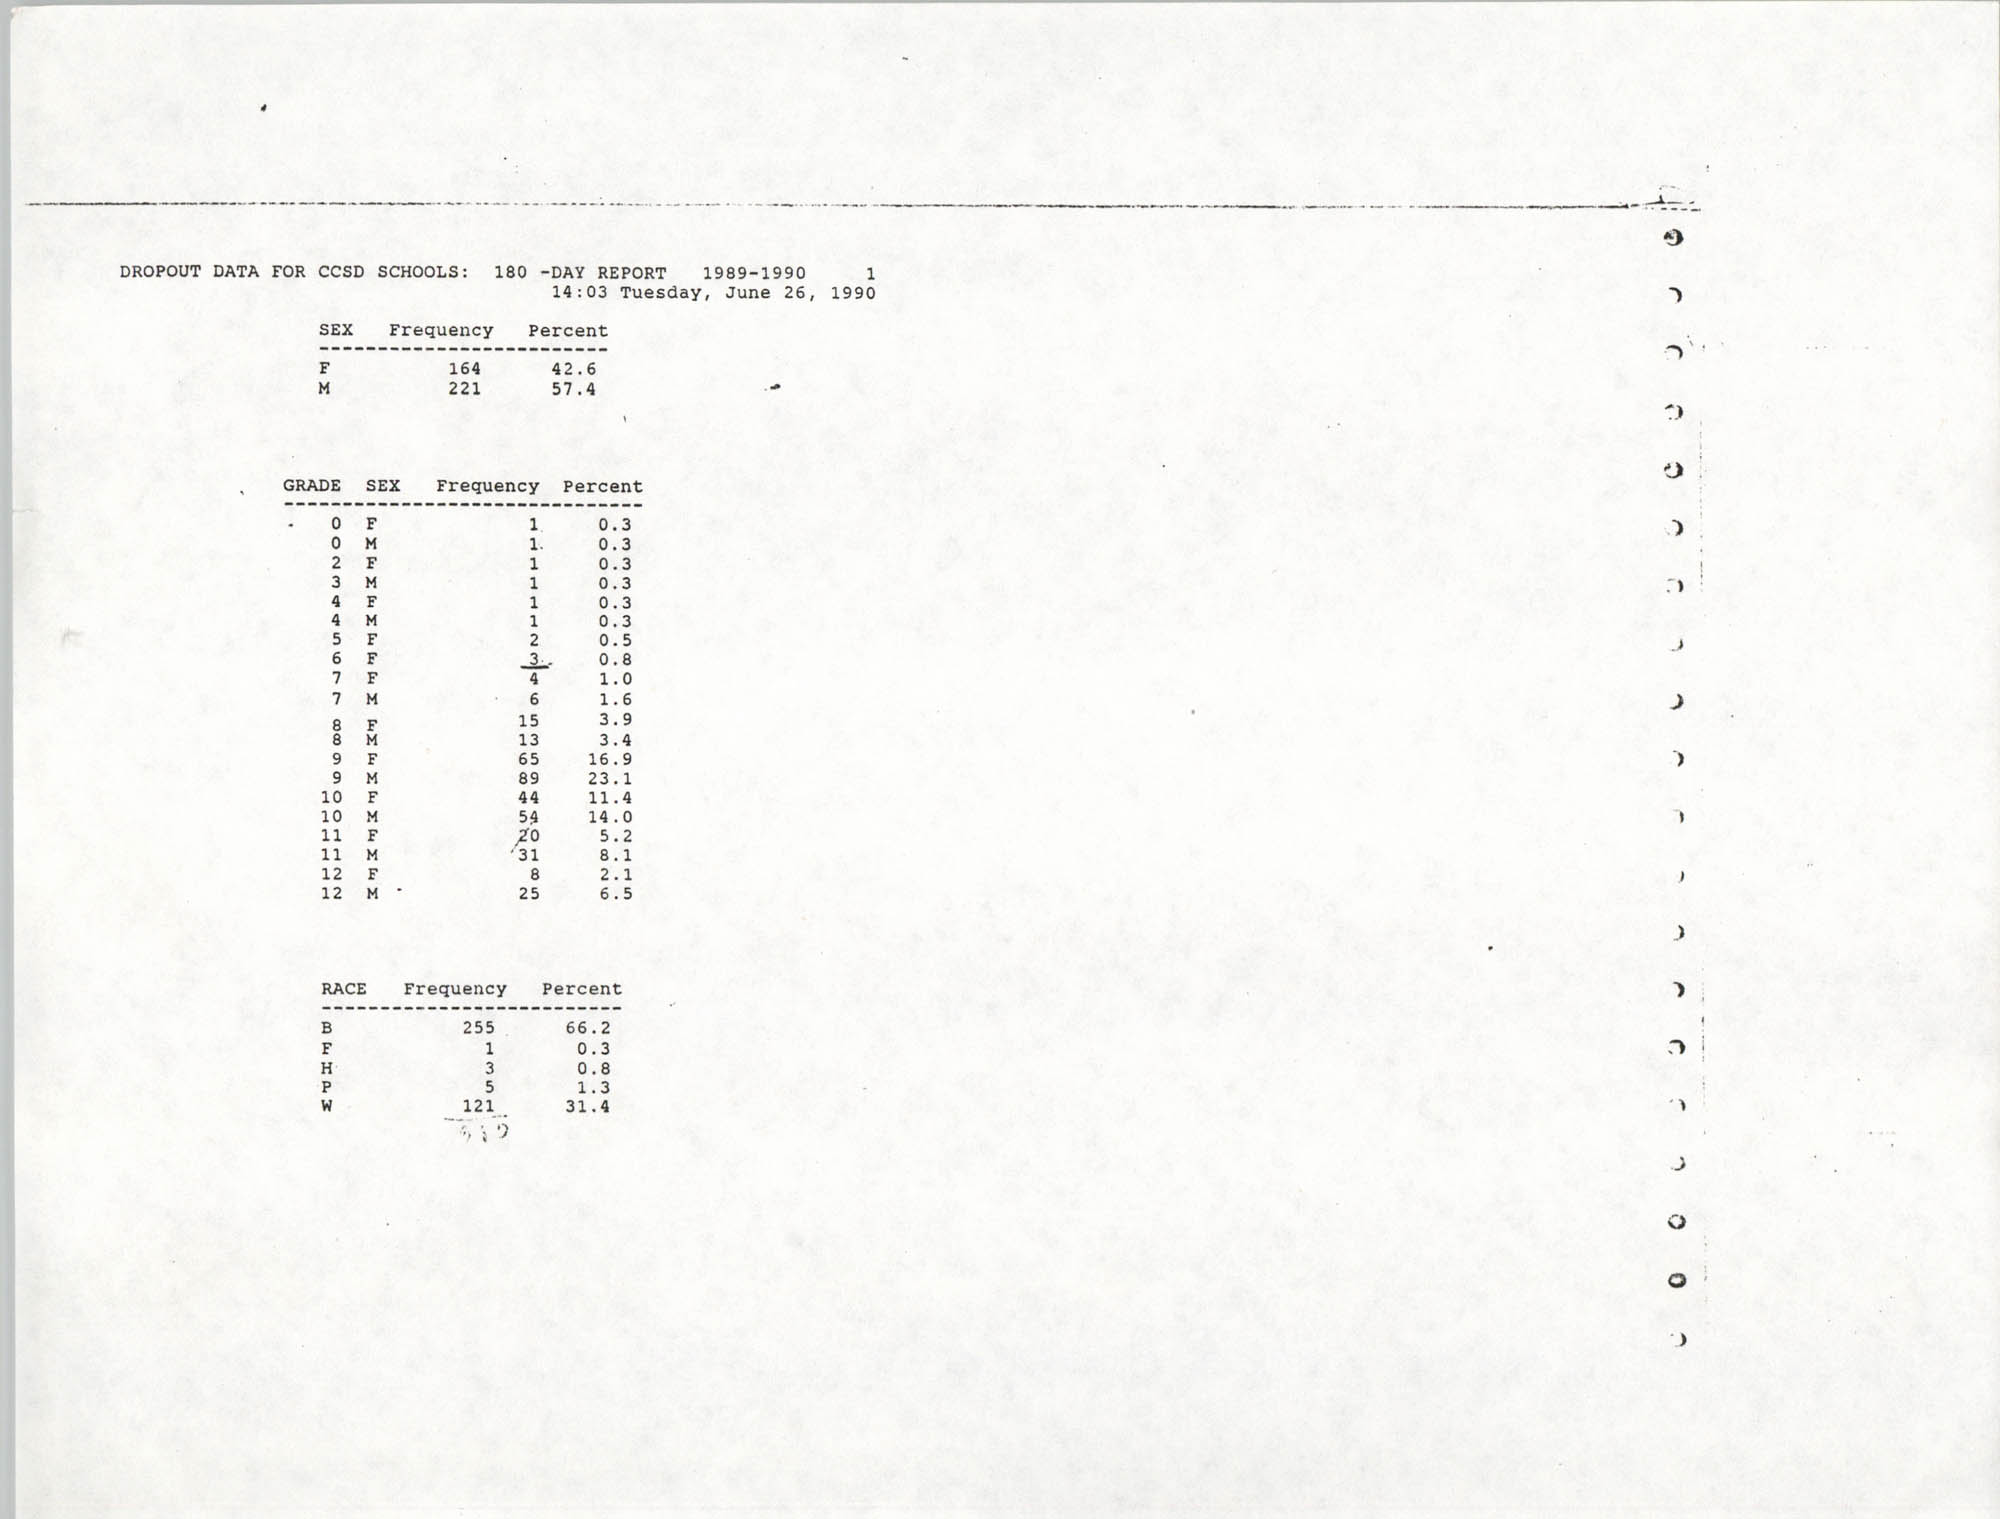 Data for Charleston County School District Schools, 1989-1990, Dropout Data, Page 1